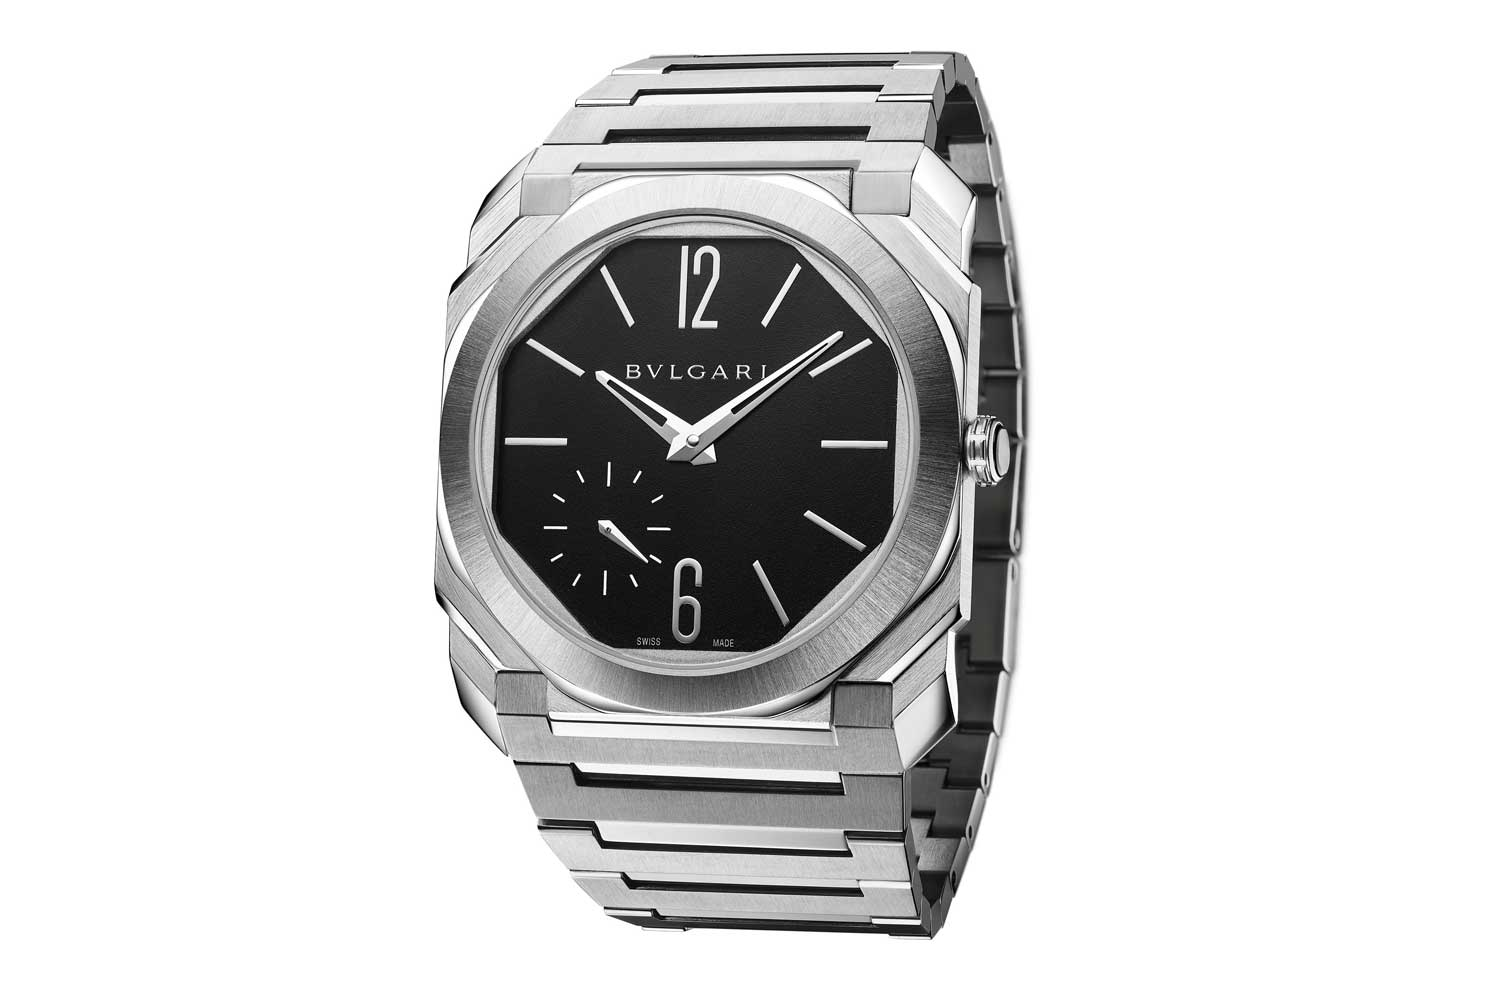 Octo Finissimo Automatic Satin-Polished Steel 103297